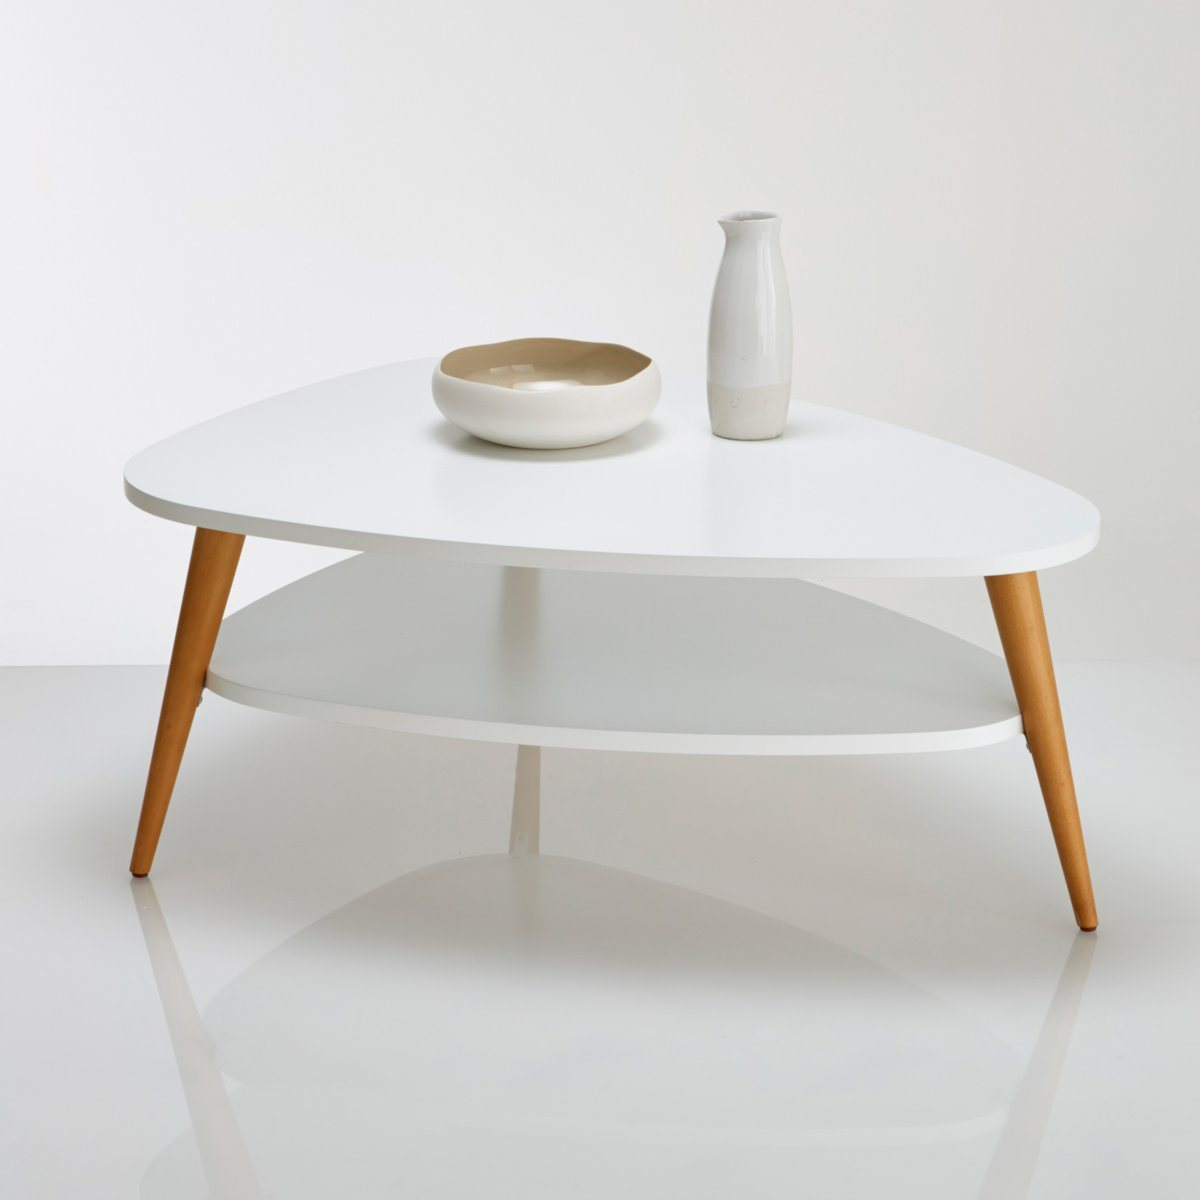 La table basse parfaite pour votre salon rise and shine - Table de salon la redoute ...